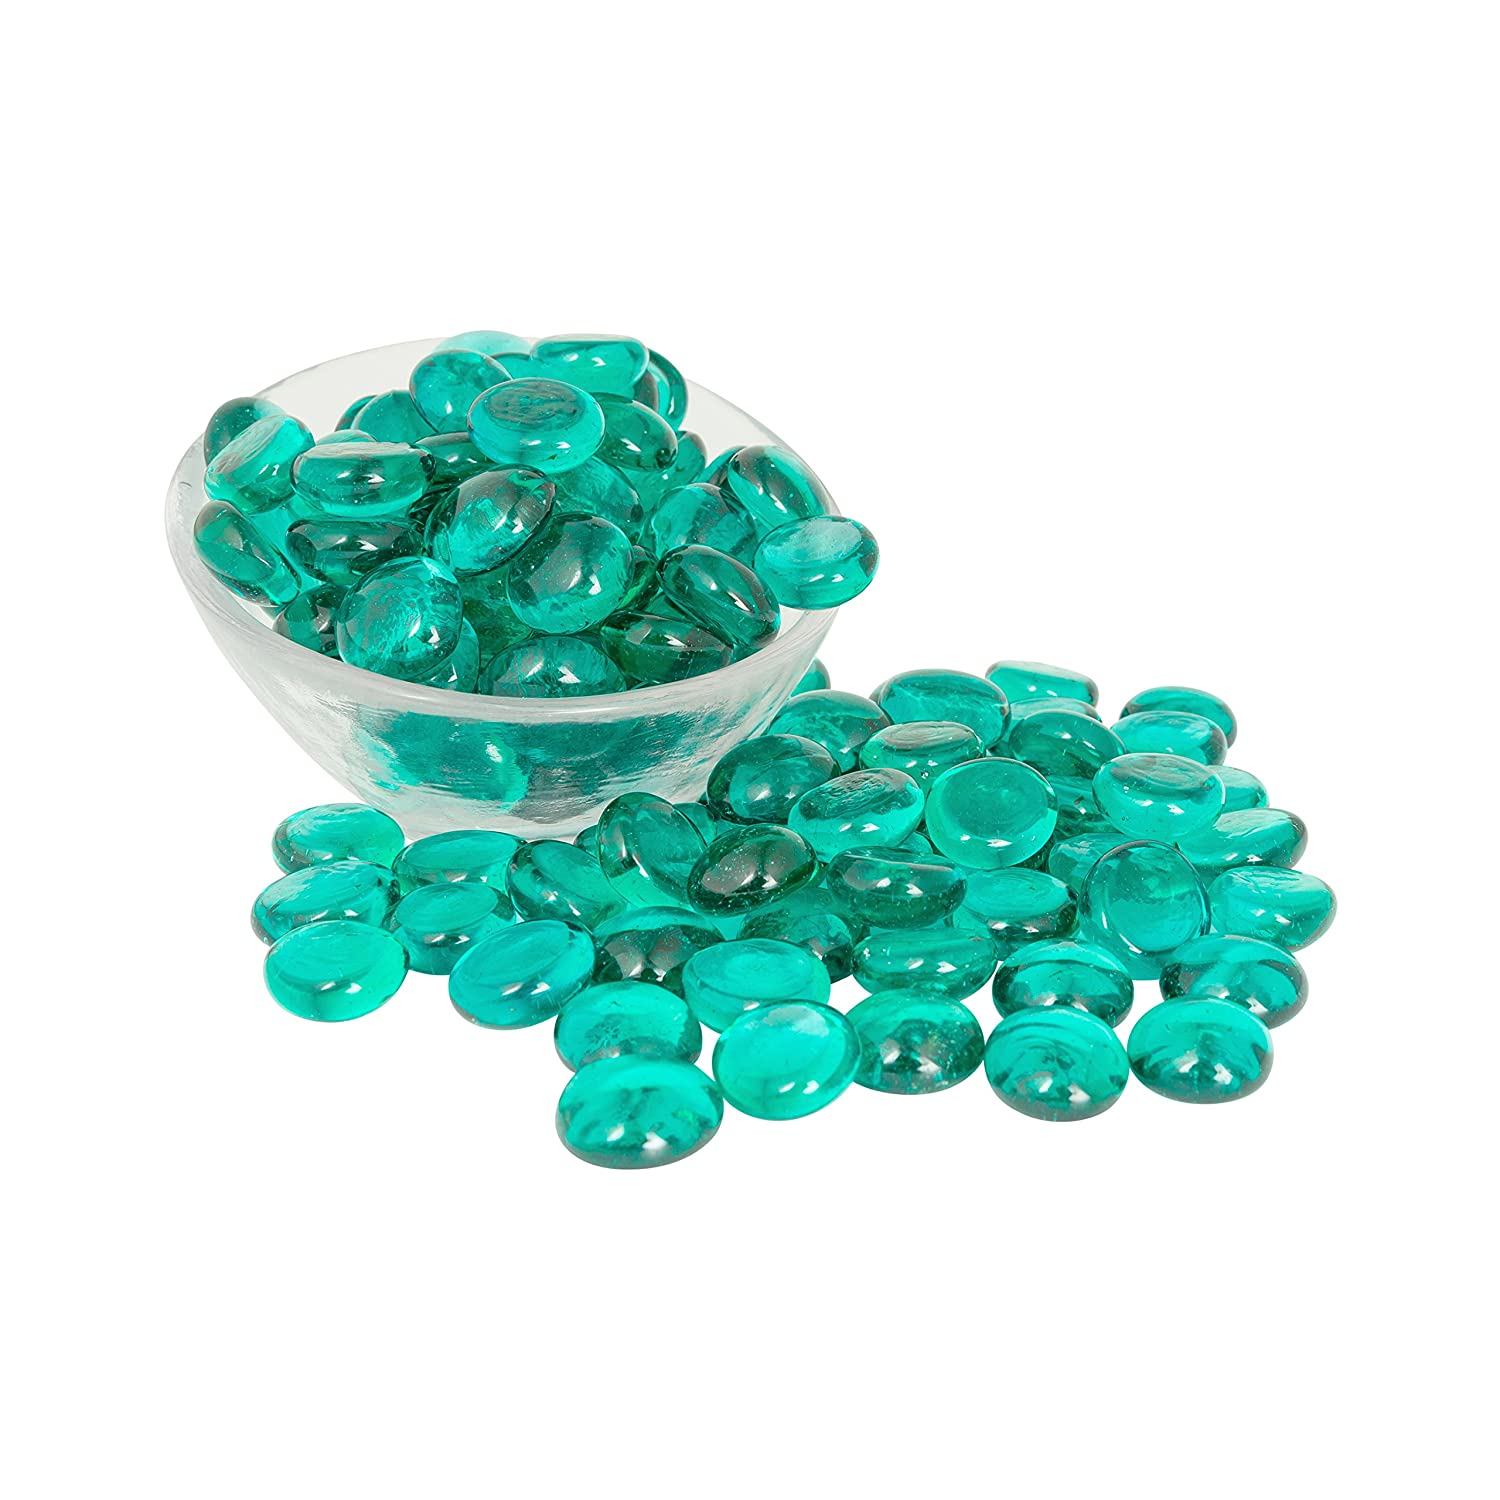 Amazon teal glass gems 1 lbs fills 1 14 cups vol non amazon teal glass gems 1 lbs fills 1 14 cups vol non toxic lead free vase filler table scatter aquarium filler beautiful smooth fun reviewsmspy